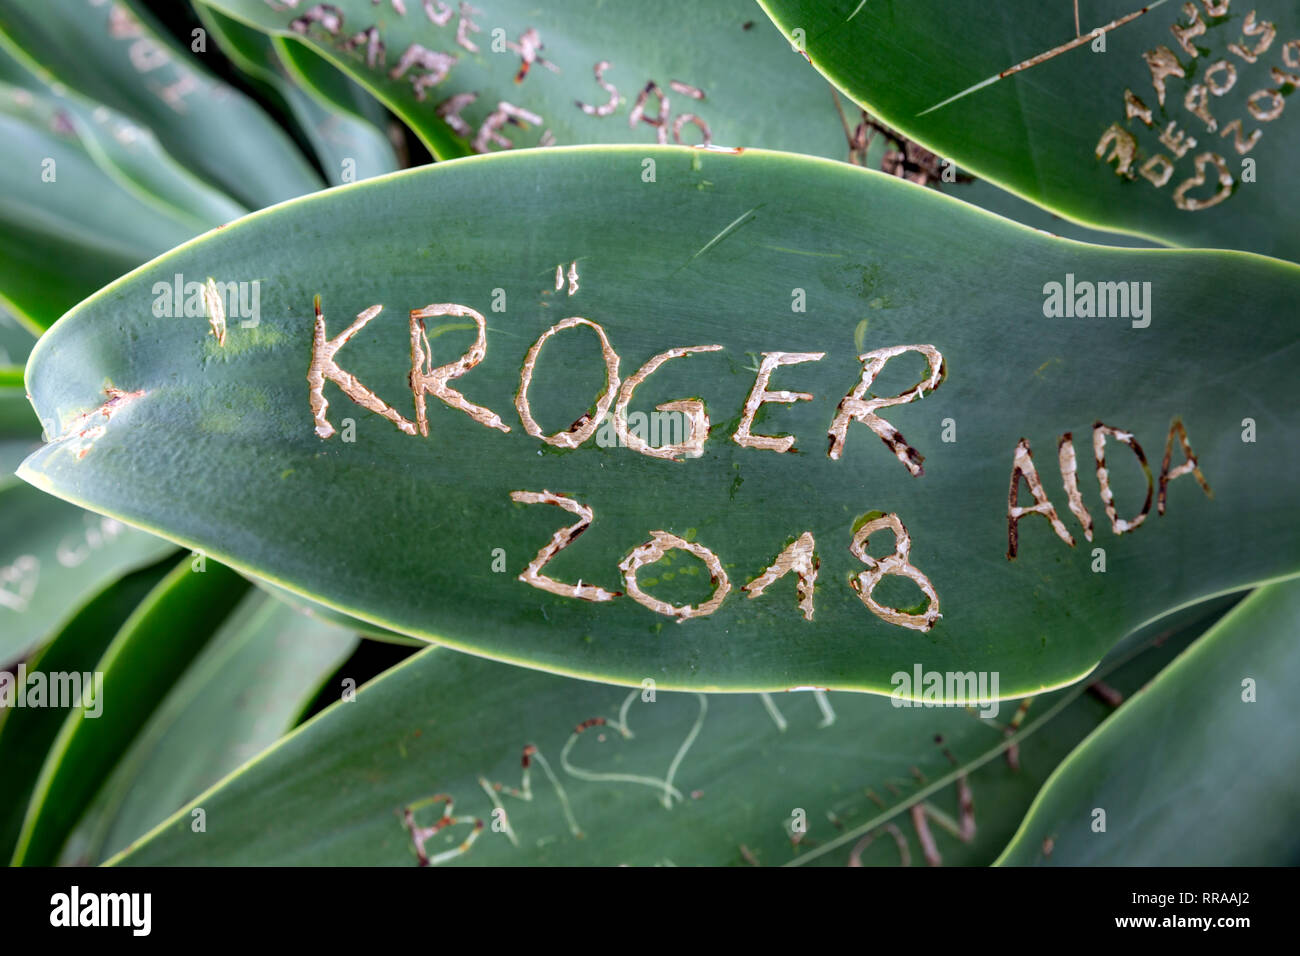 Agave plant with graffiti writing scratched into it's leaves. - Stock Image